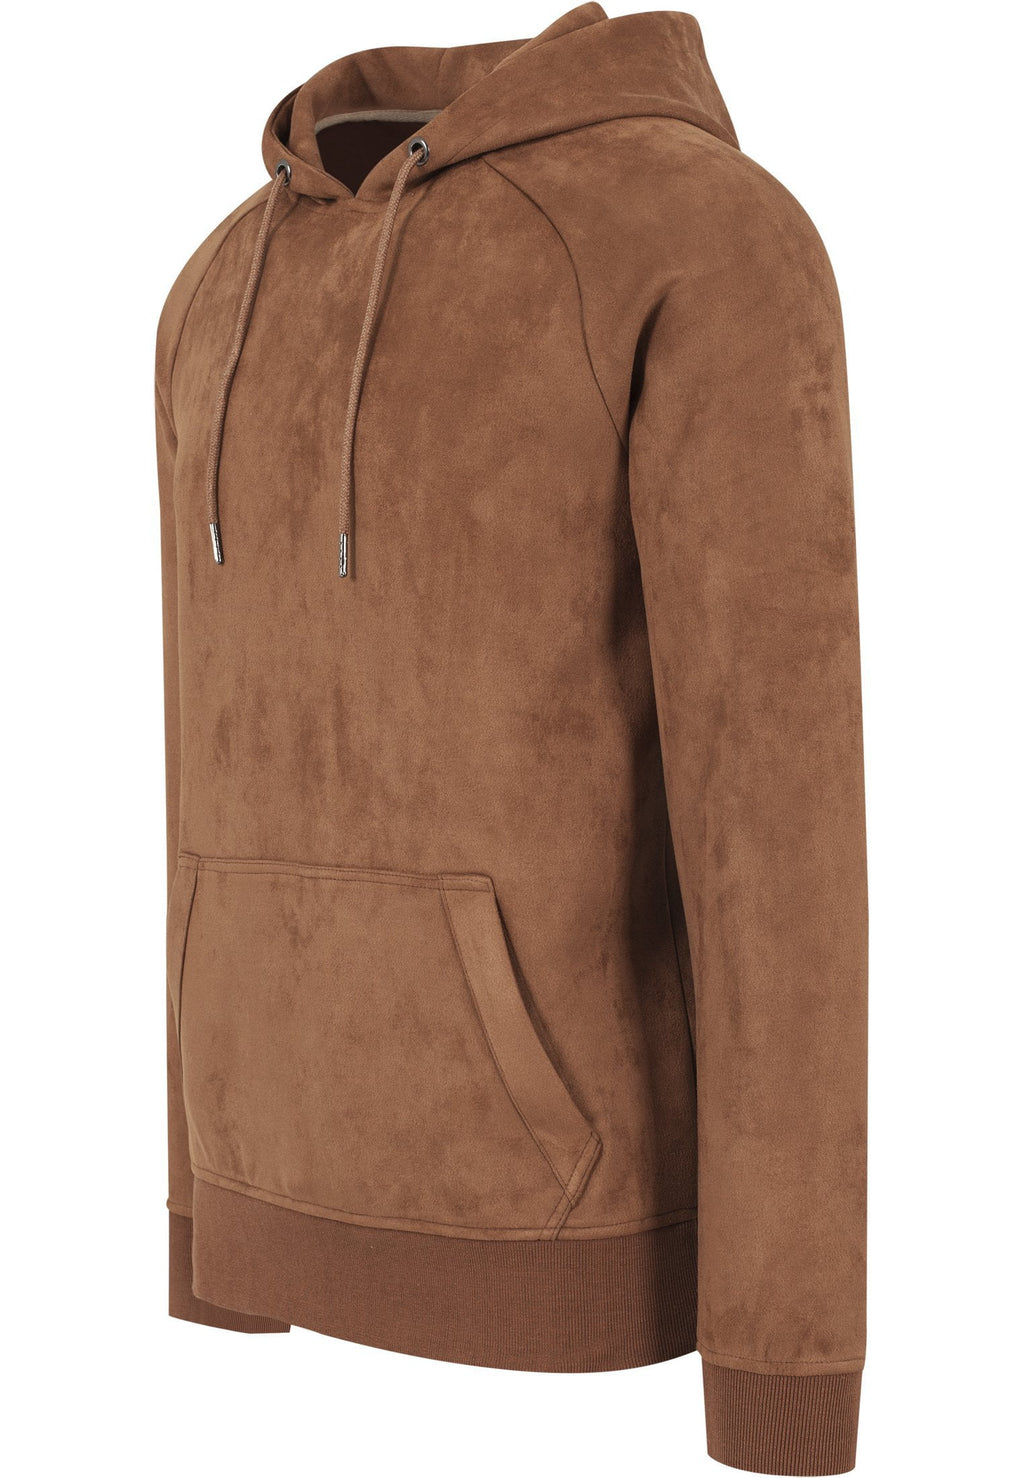 Imitation Suede Hoody - Toffee